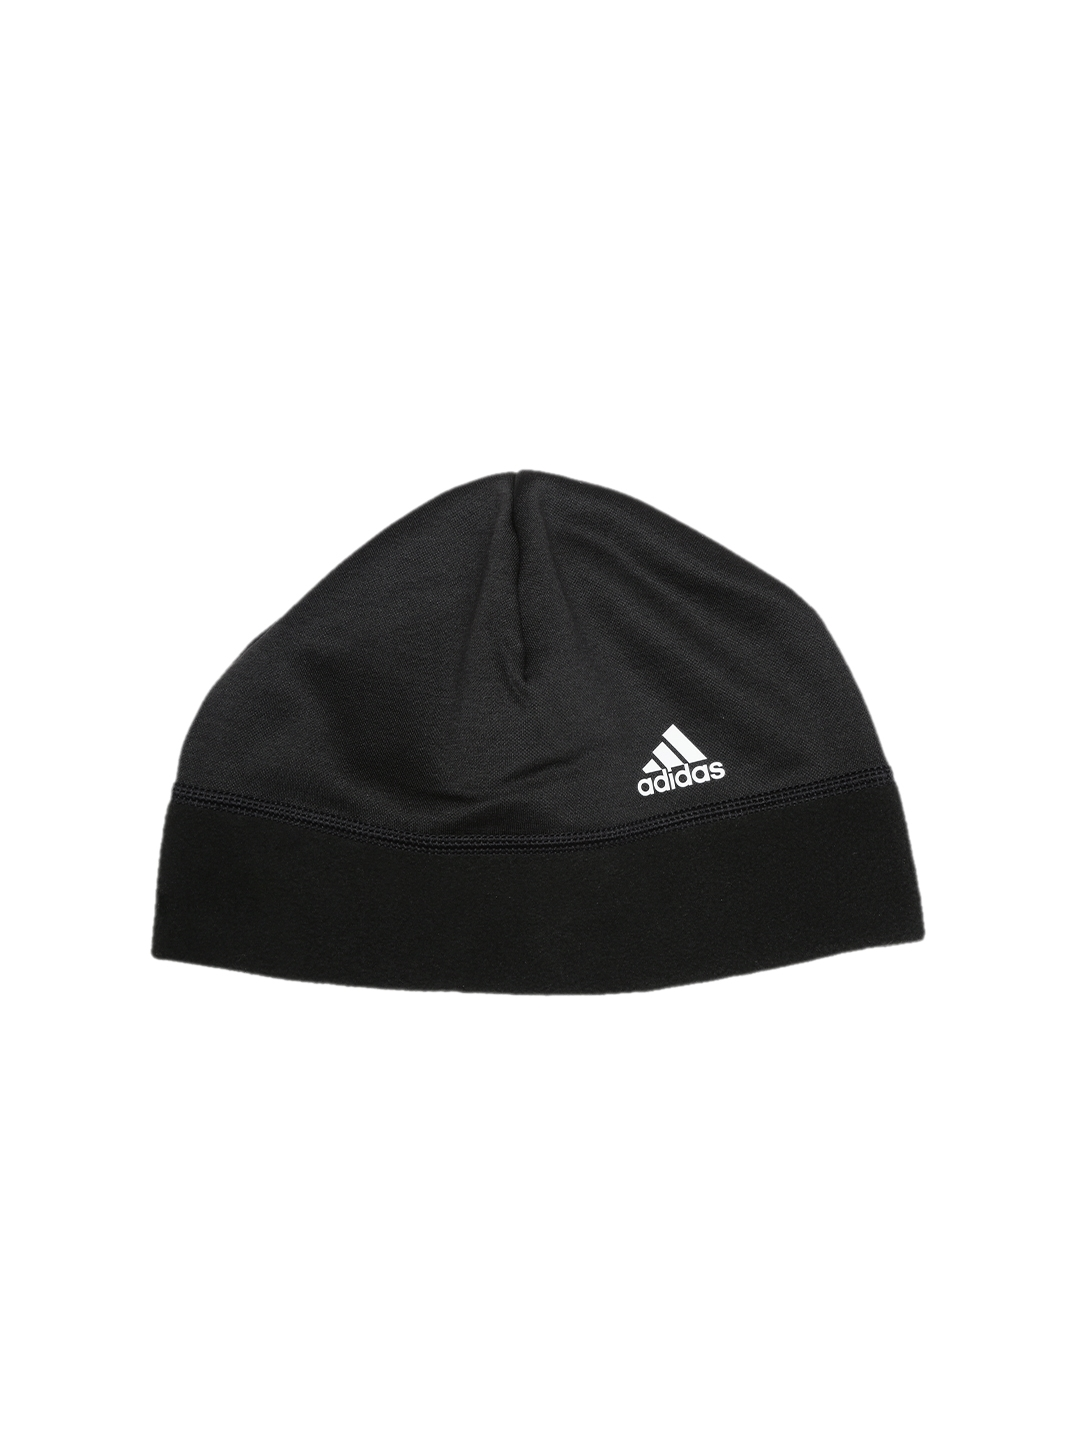 6e76d96c188 Buy ADIDAS Unisex Black ClimaWarm Fleece Solid Beanie - Caps for ...